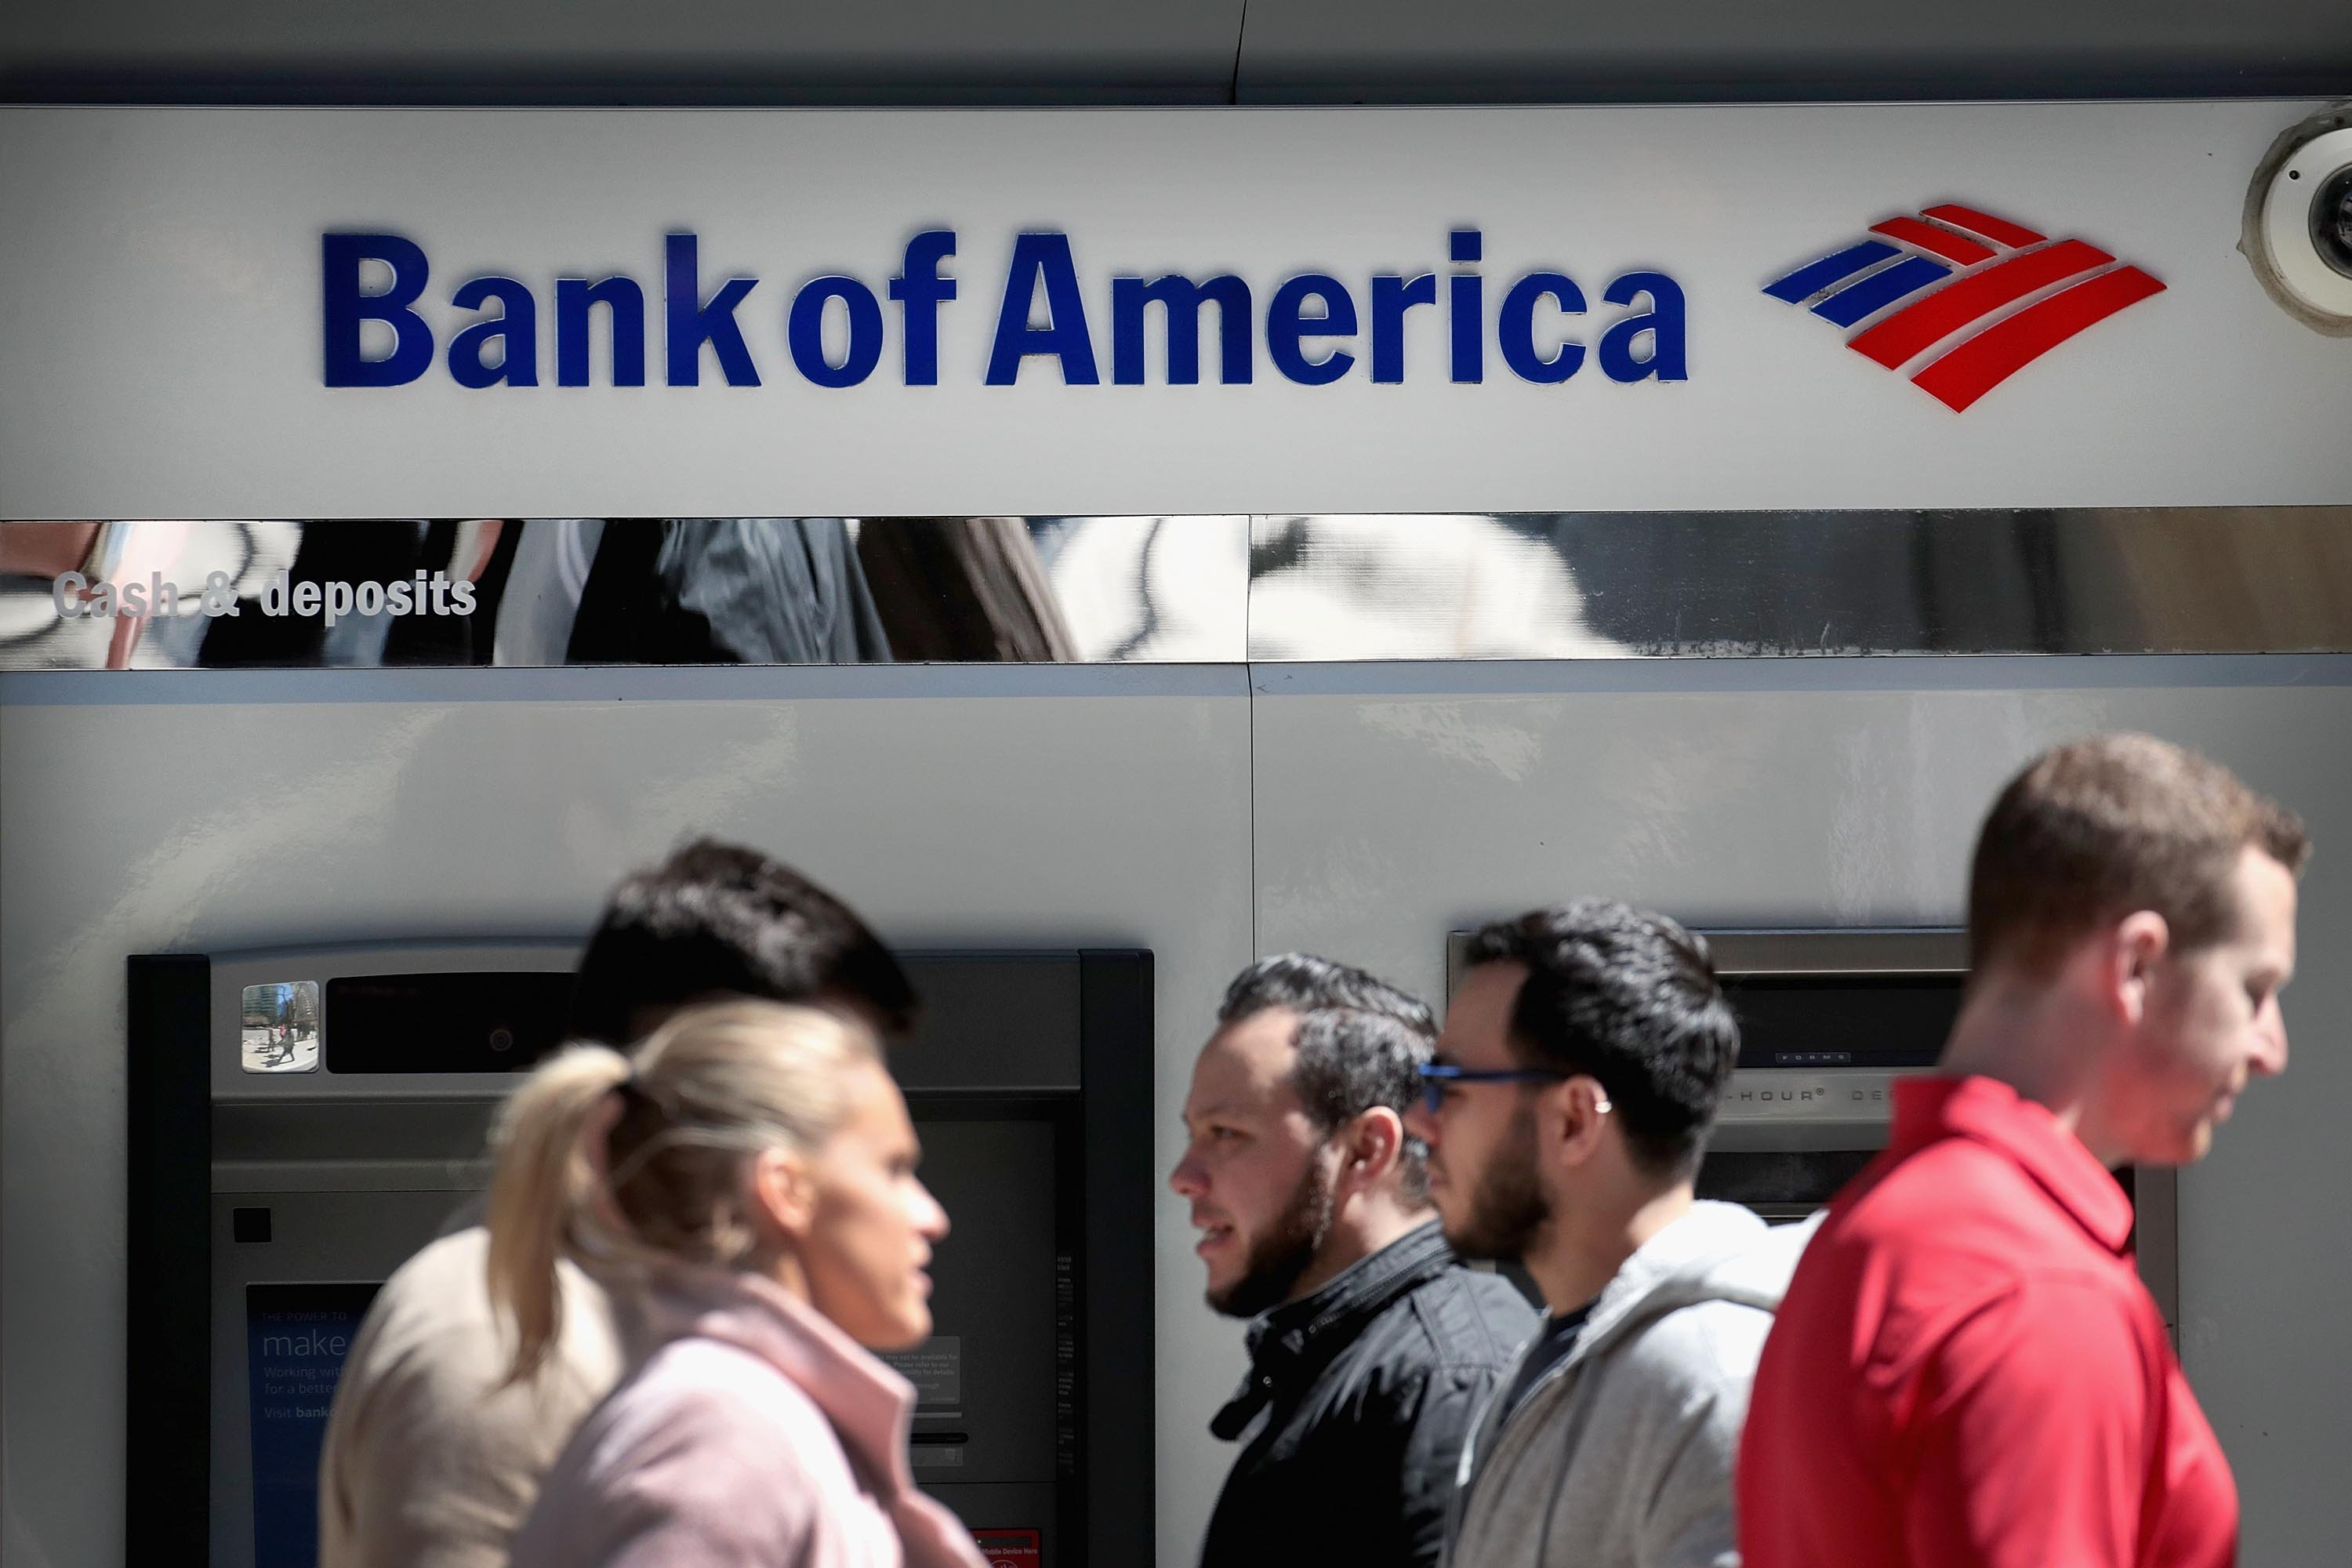 Bank of America rakes in record profit driven by strength from US households